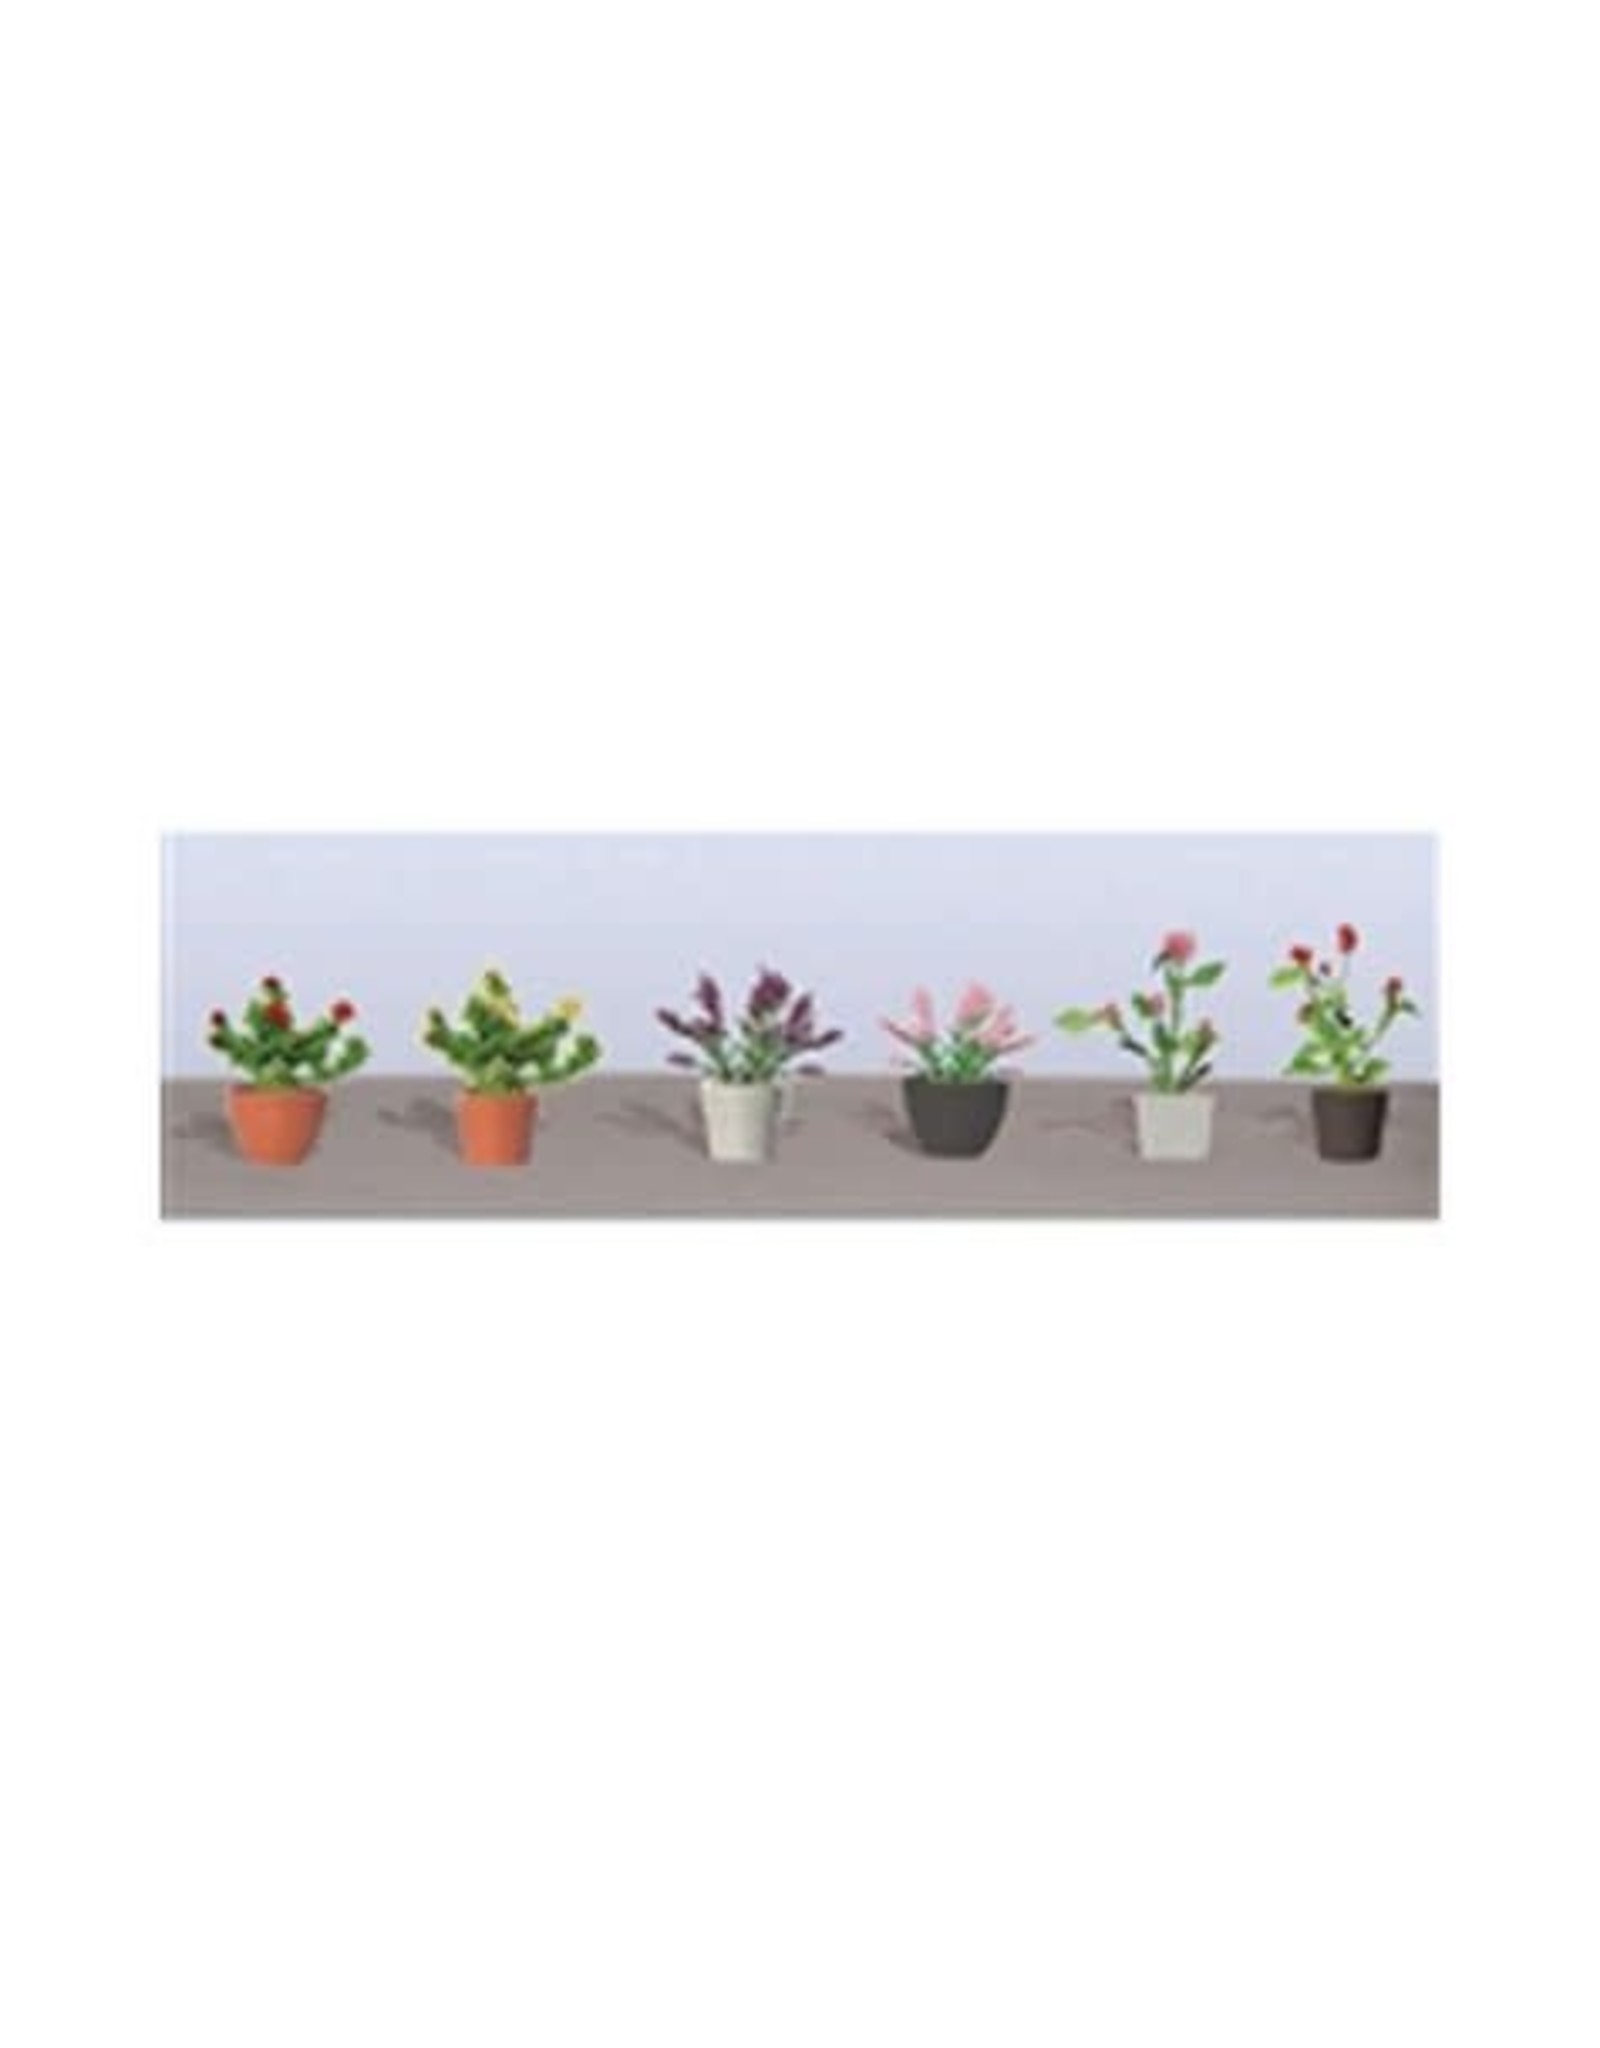 JTT Assorted Potted Flower Plants 6/pk 95566